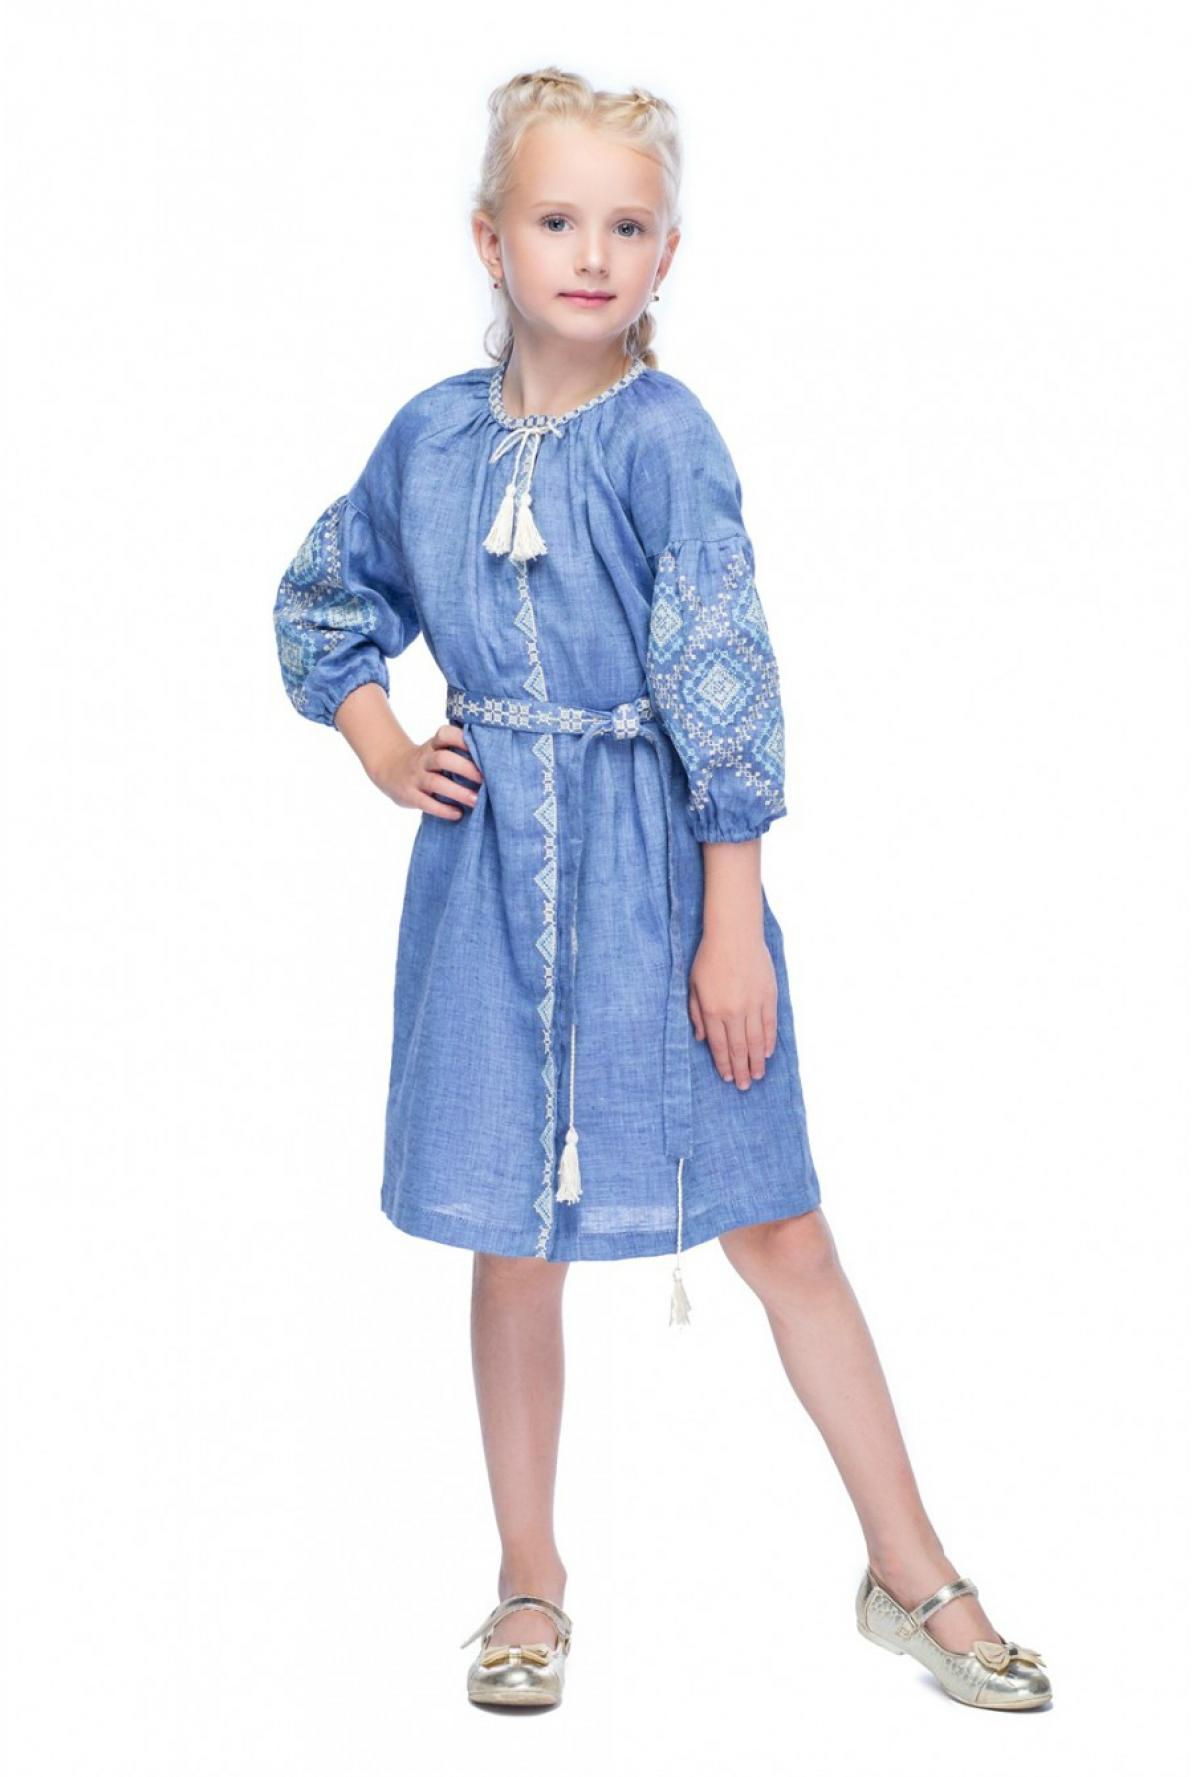 Embroidered dress for the girl of denim color. Photo №1. | Narodnyi dim Ukraine